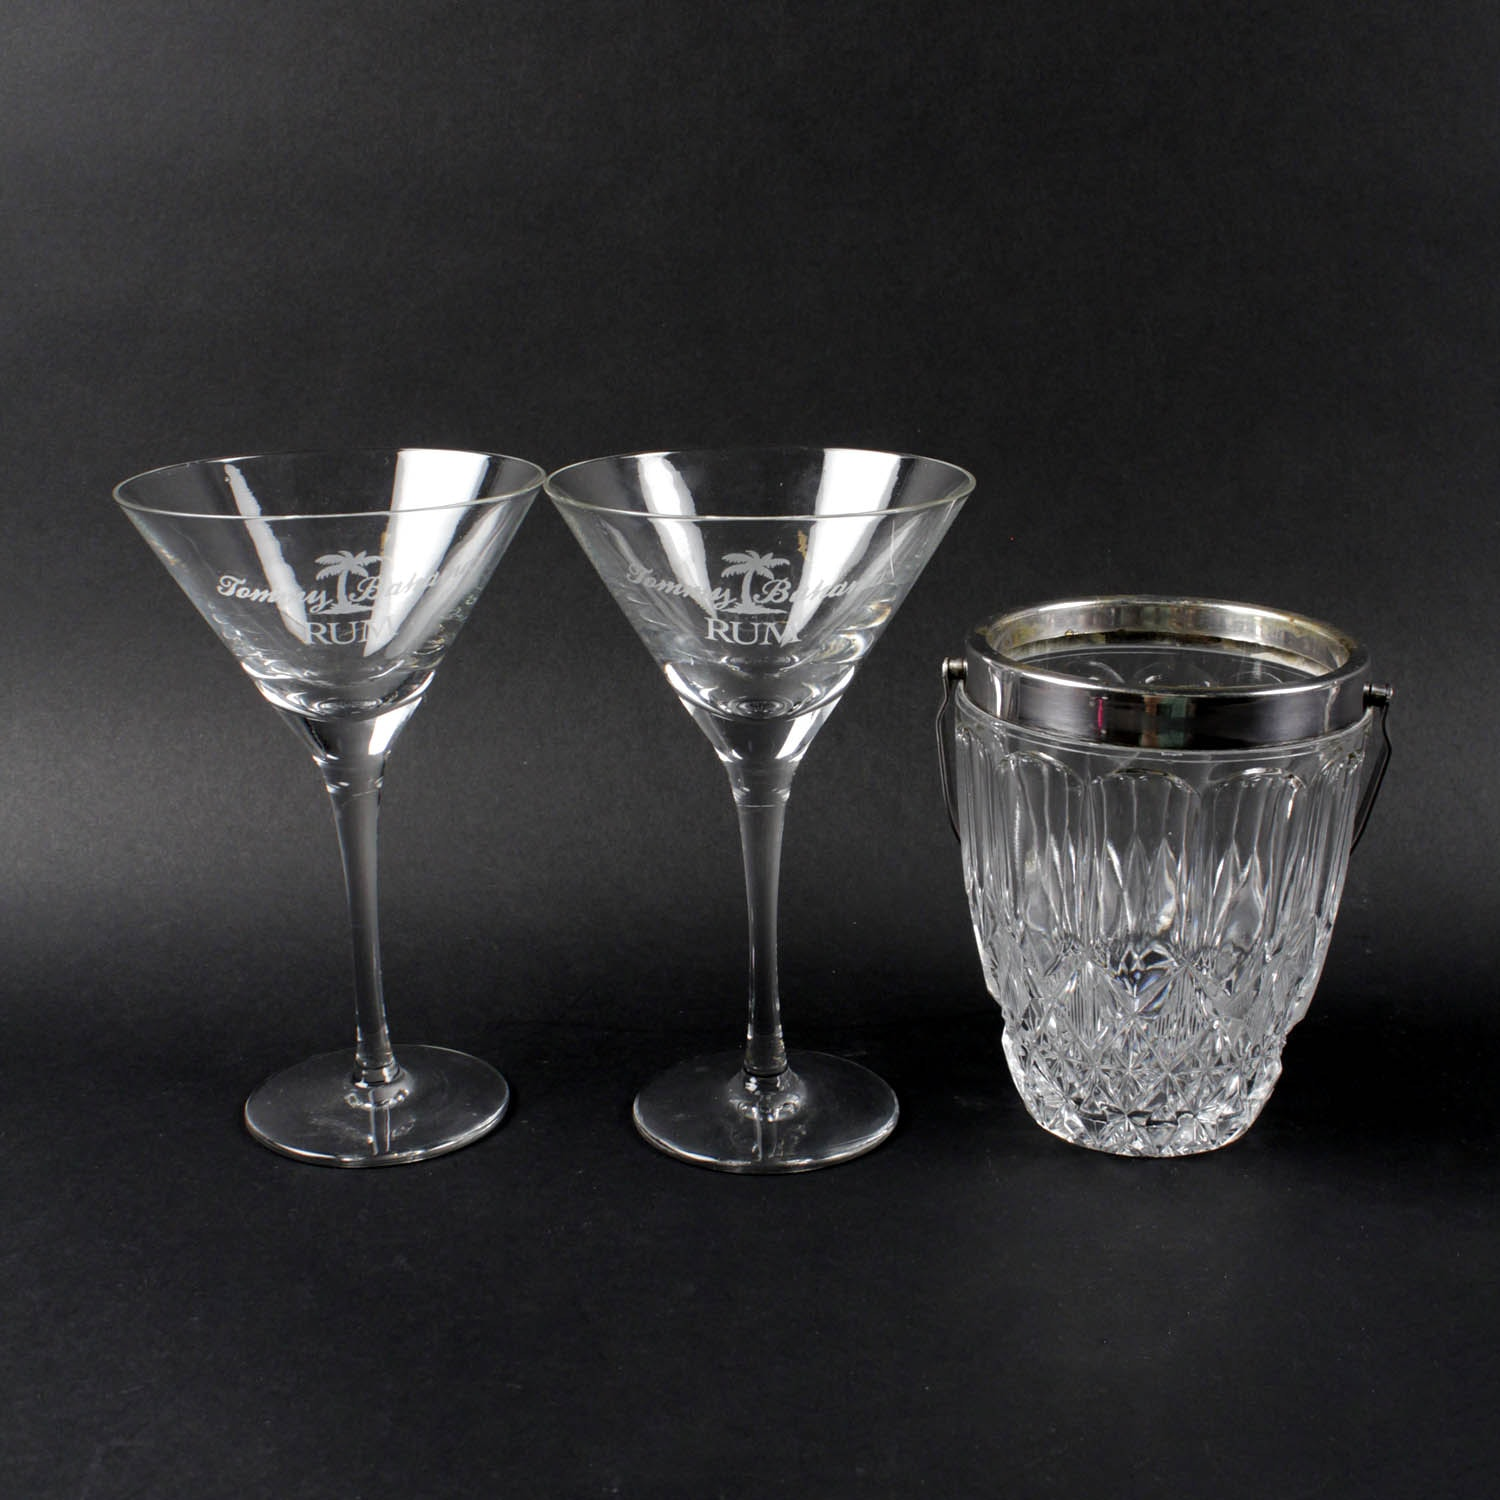 Marvelous Crystal Ice Bucket And Tommy Bahama Rum Martini Glasses ...